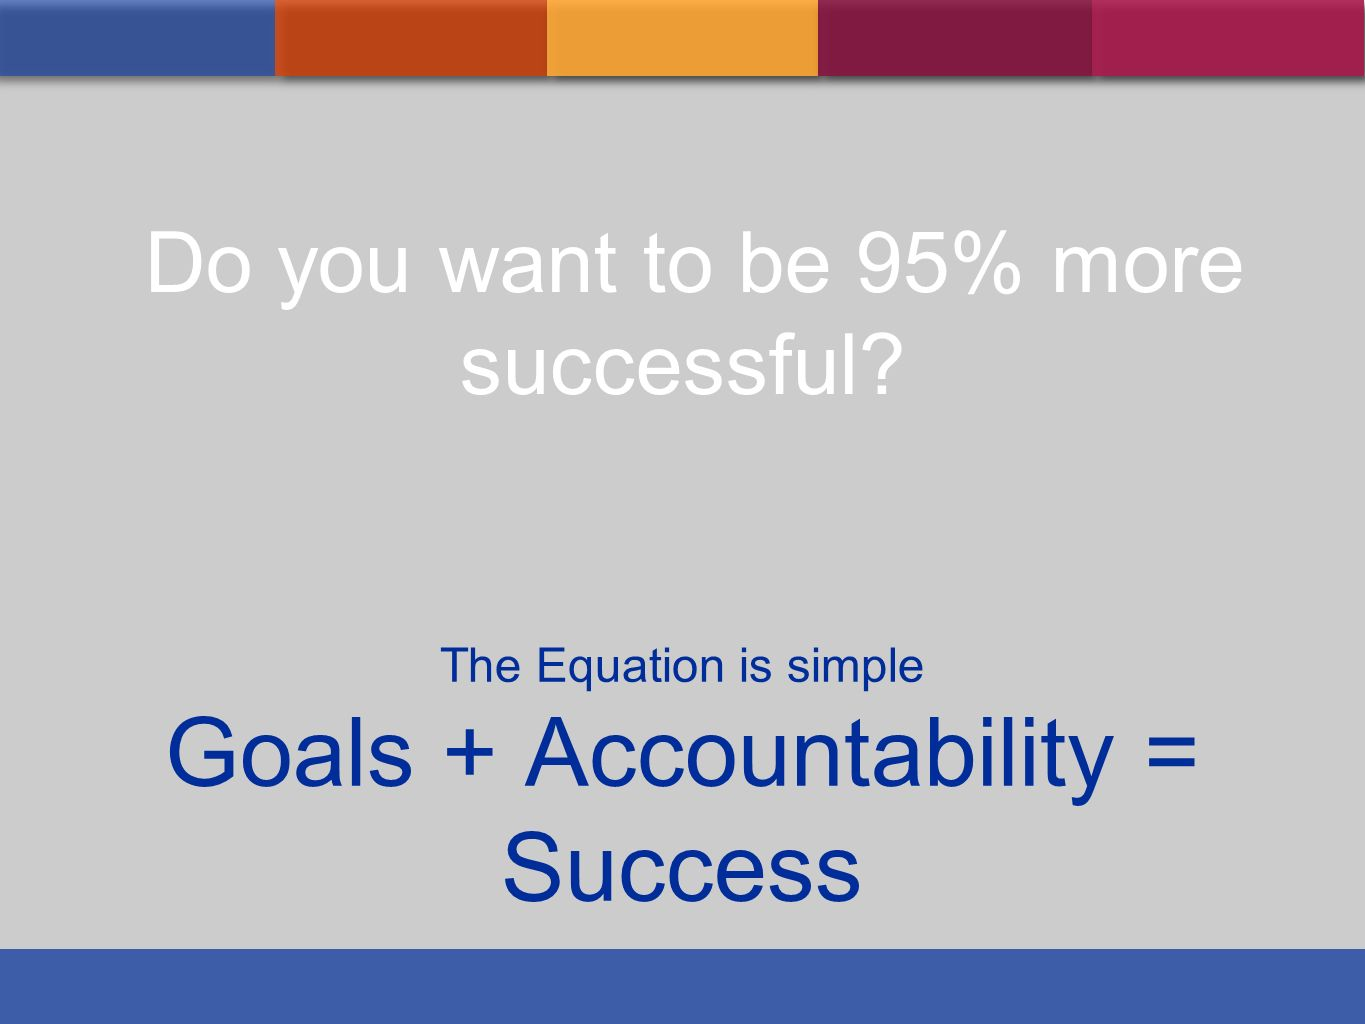 Goals + Accountability = Success